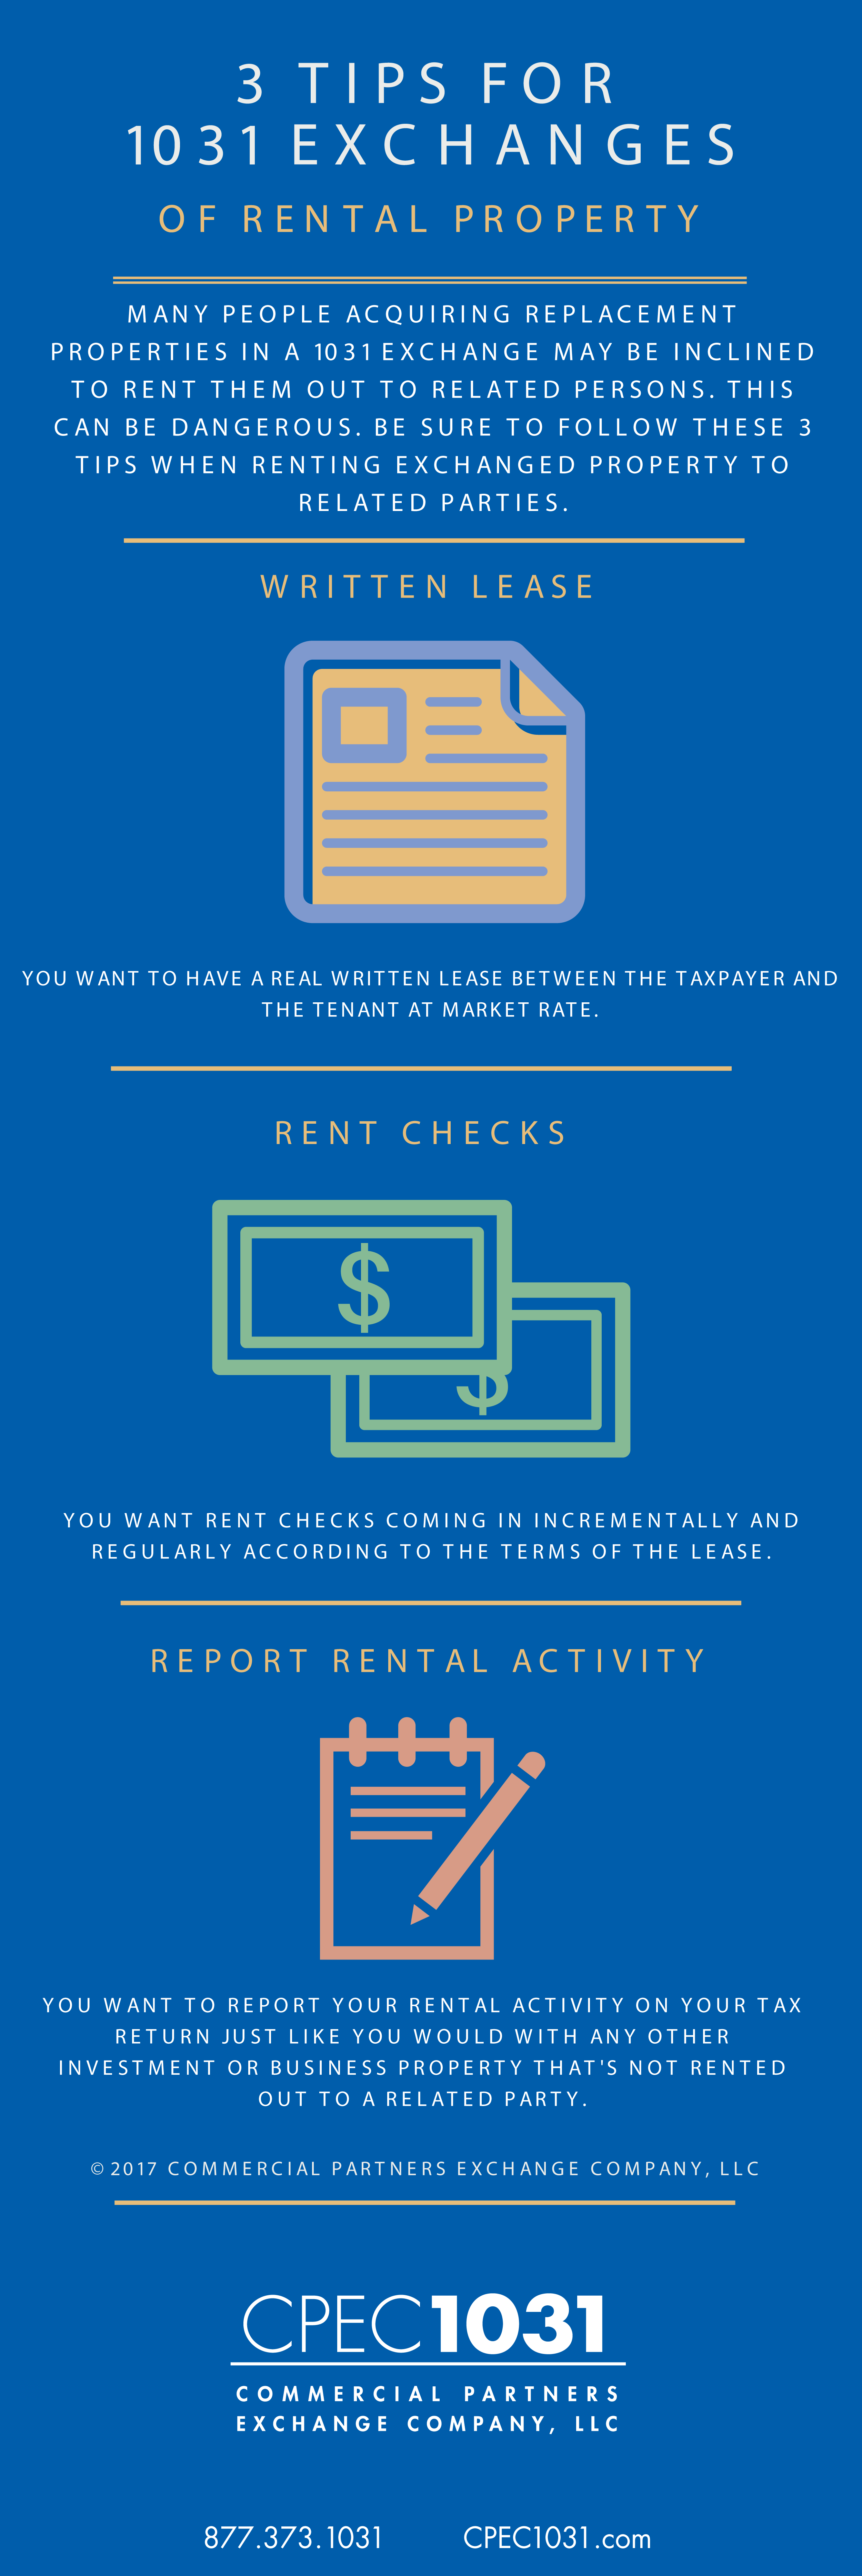 1031 Exchange Tips for Rental Property